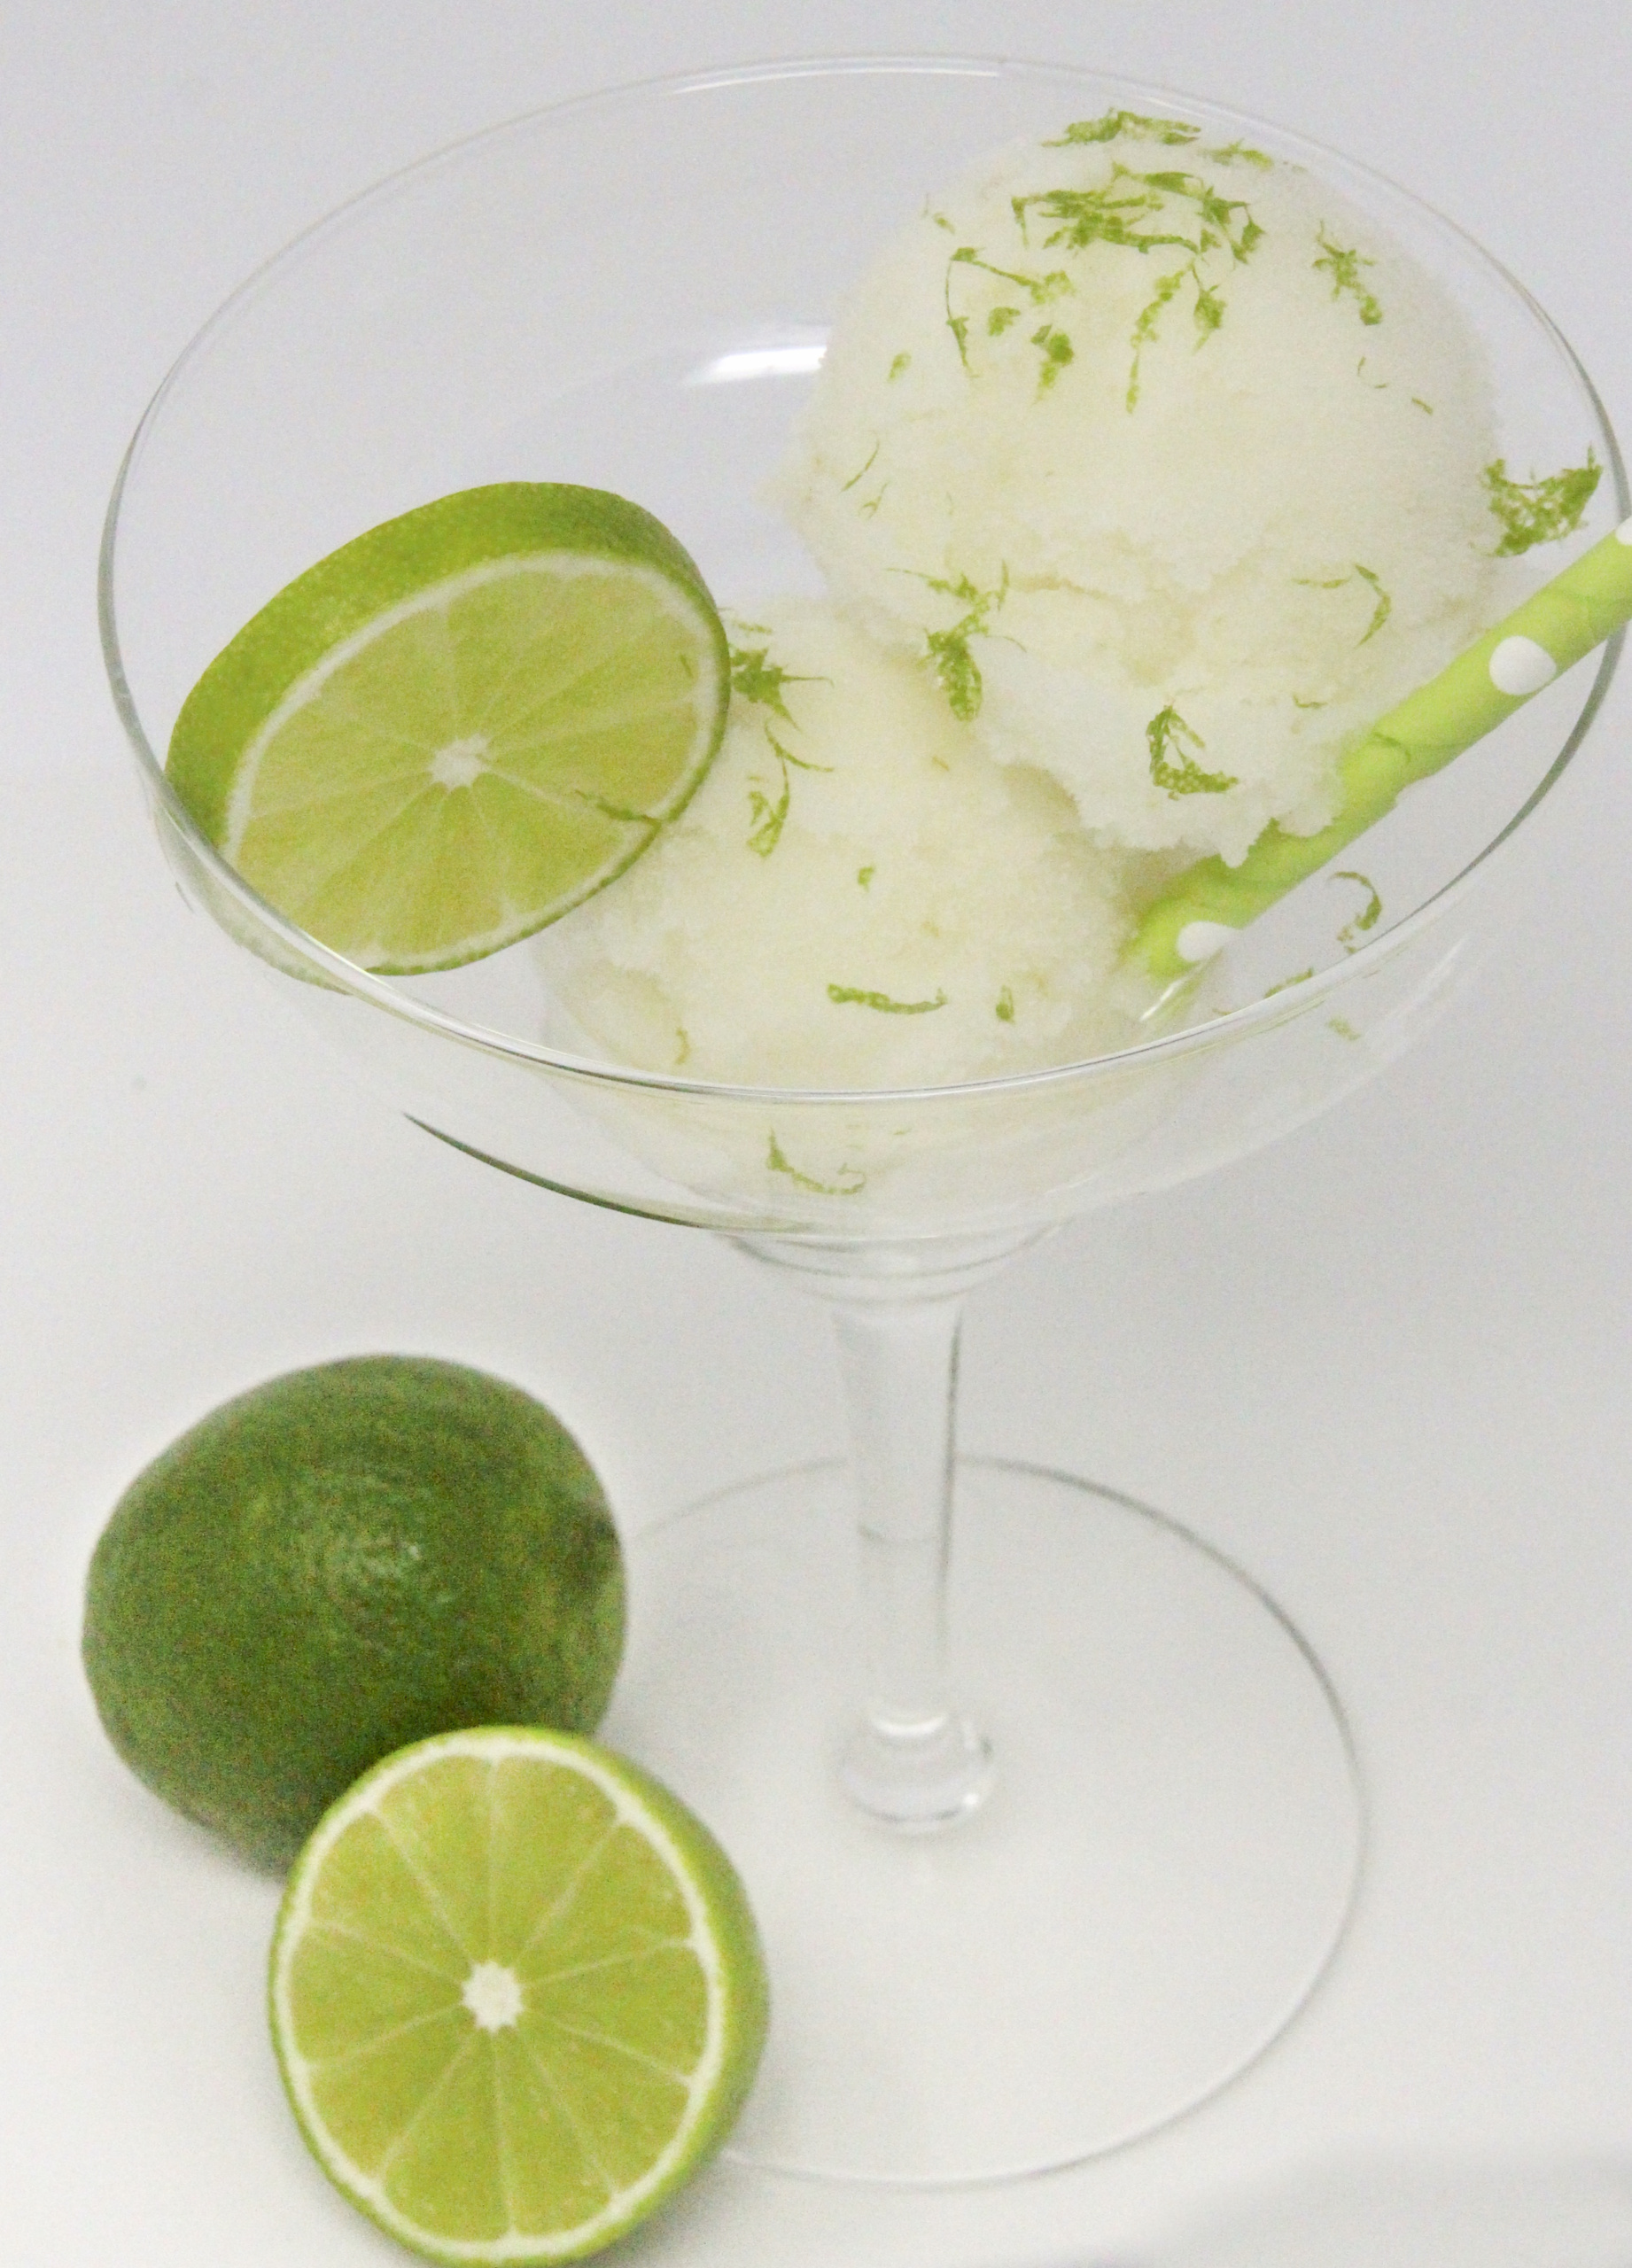 A tart-sweet lime sorbet with a kick from tequila and triple sec, this Ultimate Frozen Margarita captures the essence of summer! Recipe shared with permission granted by Meri Allan, author of THE ROCKY ROAD TO RUIN.